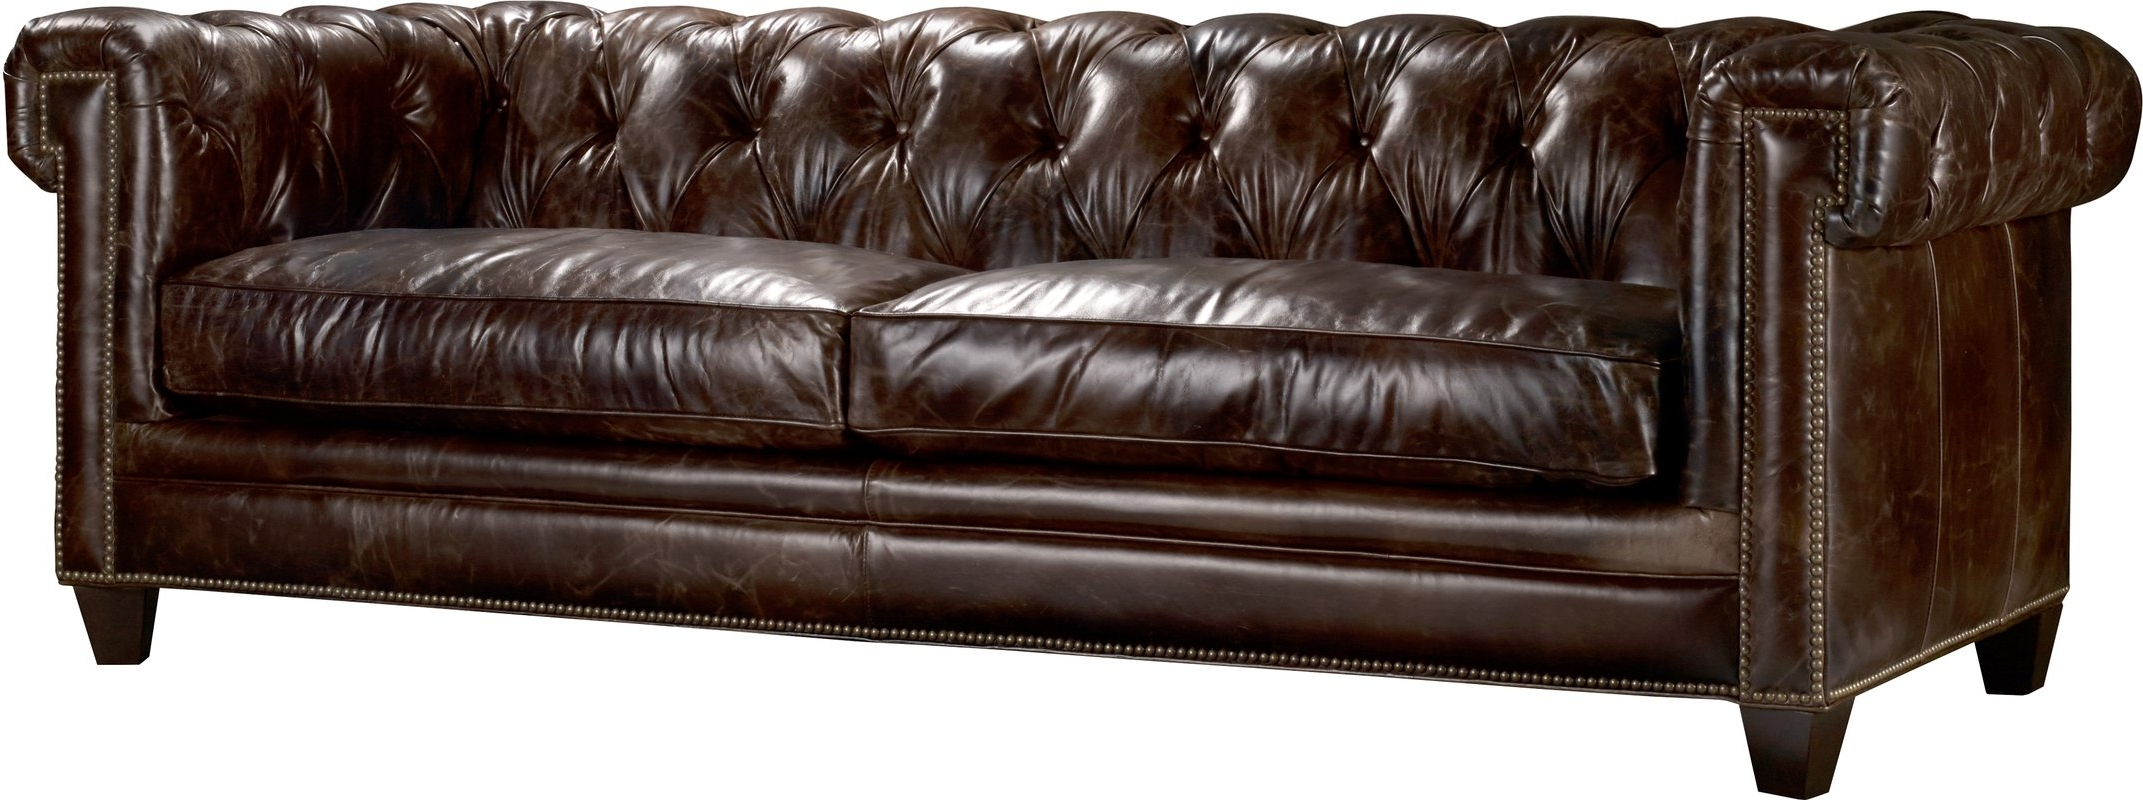 Hooker Furniture Imperial Regal Stationary Leather Chesterfield Inside Recent Leather Chesterfield Sofas (View 4 of 15)